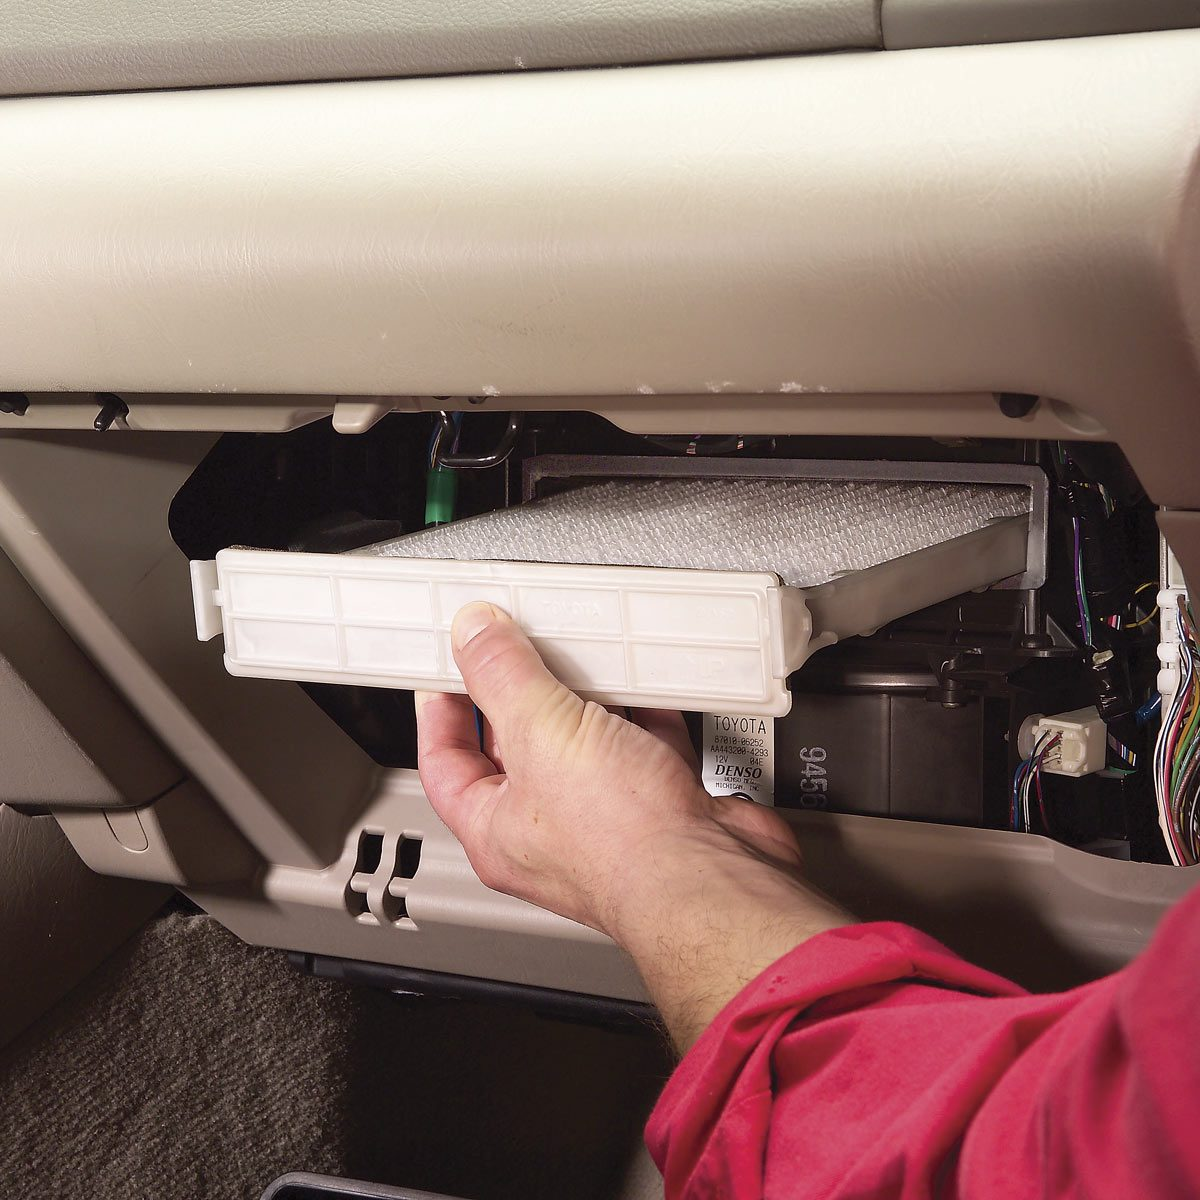 Improve Car Heating and Cooling With a New Car Cabin Air Filter